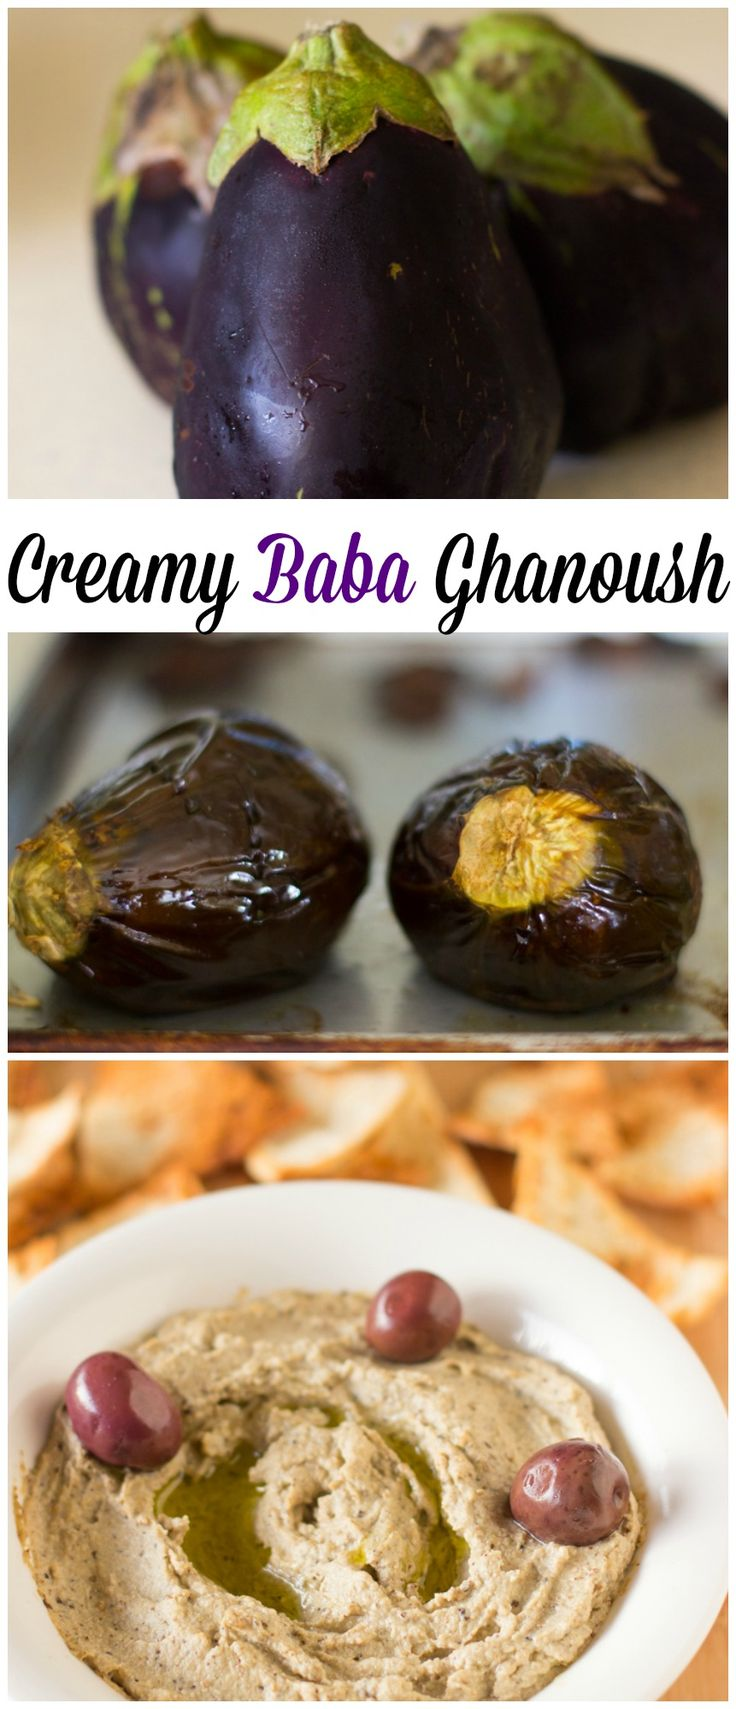 Baba Ghanoush is a creamy, classic Mediterranean eggplant dip that with a touch of sweetness makes a crowd pleaser! #vegan #vegetarian #eggp...